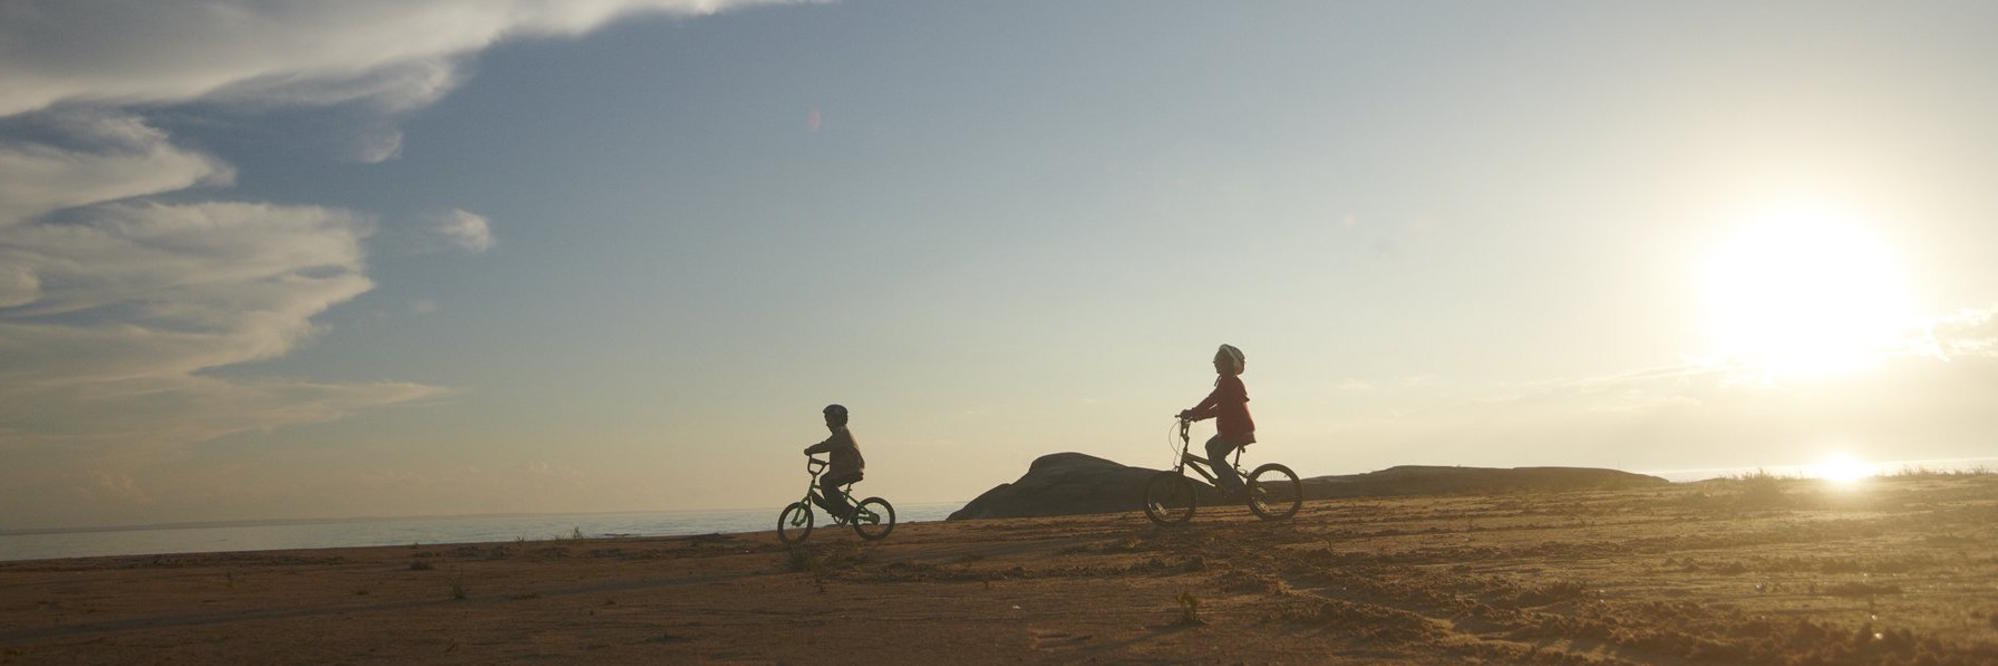 Outline of two kids riding bikes in distance on a flat landscape.